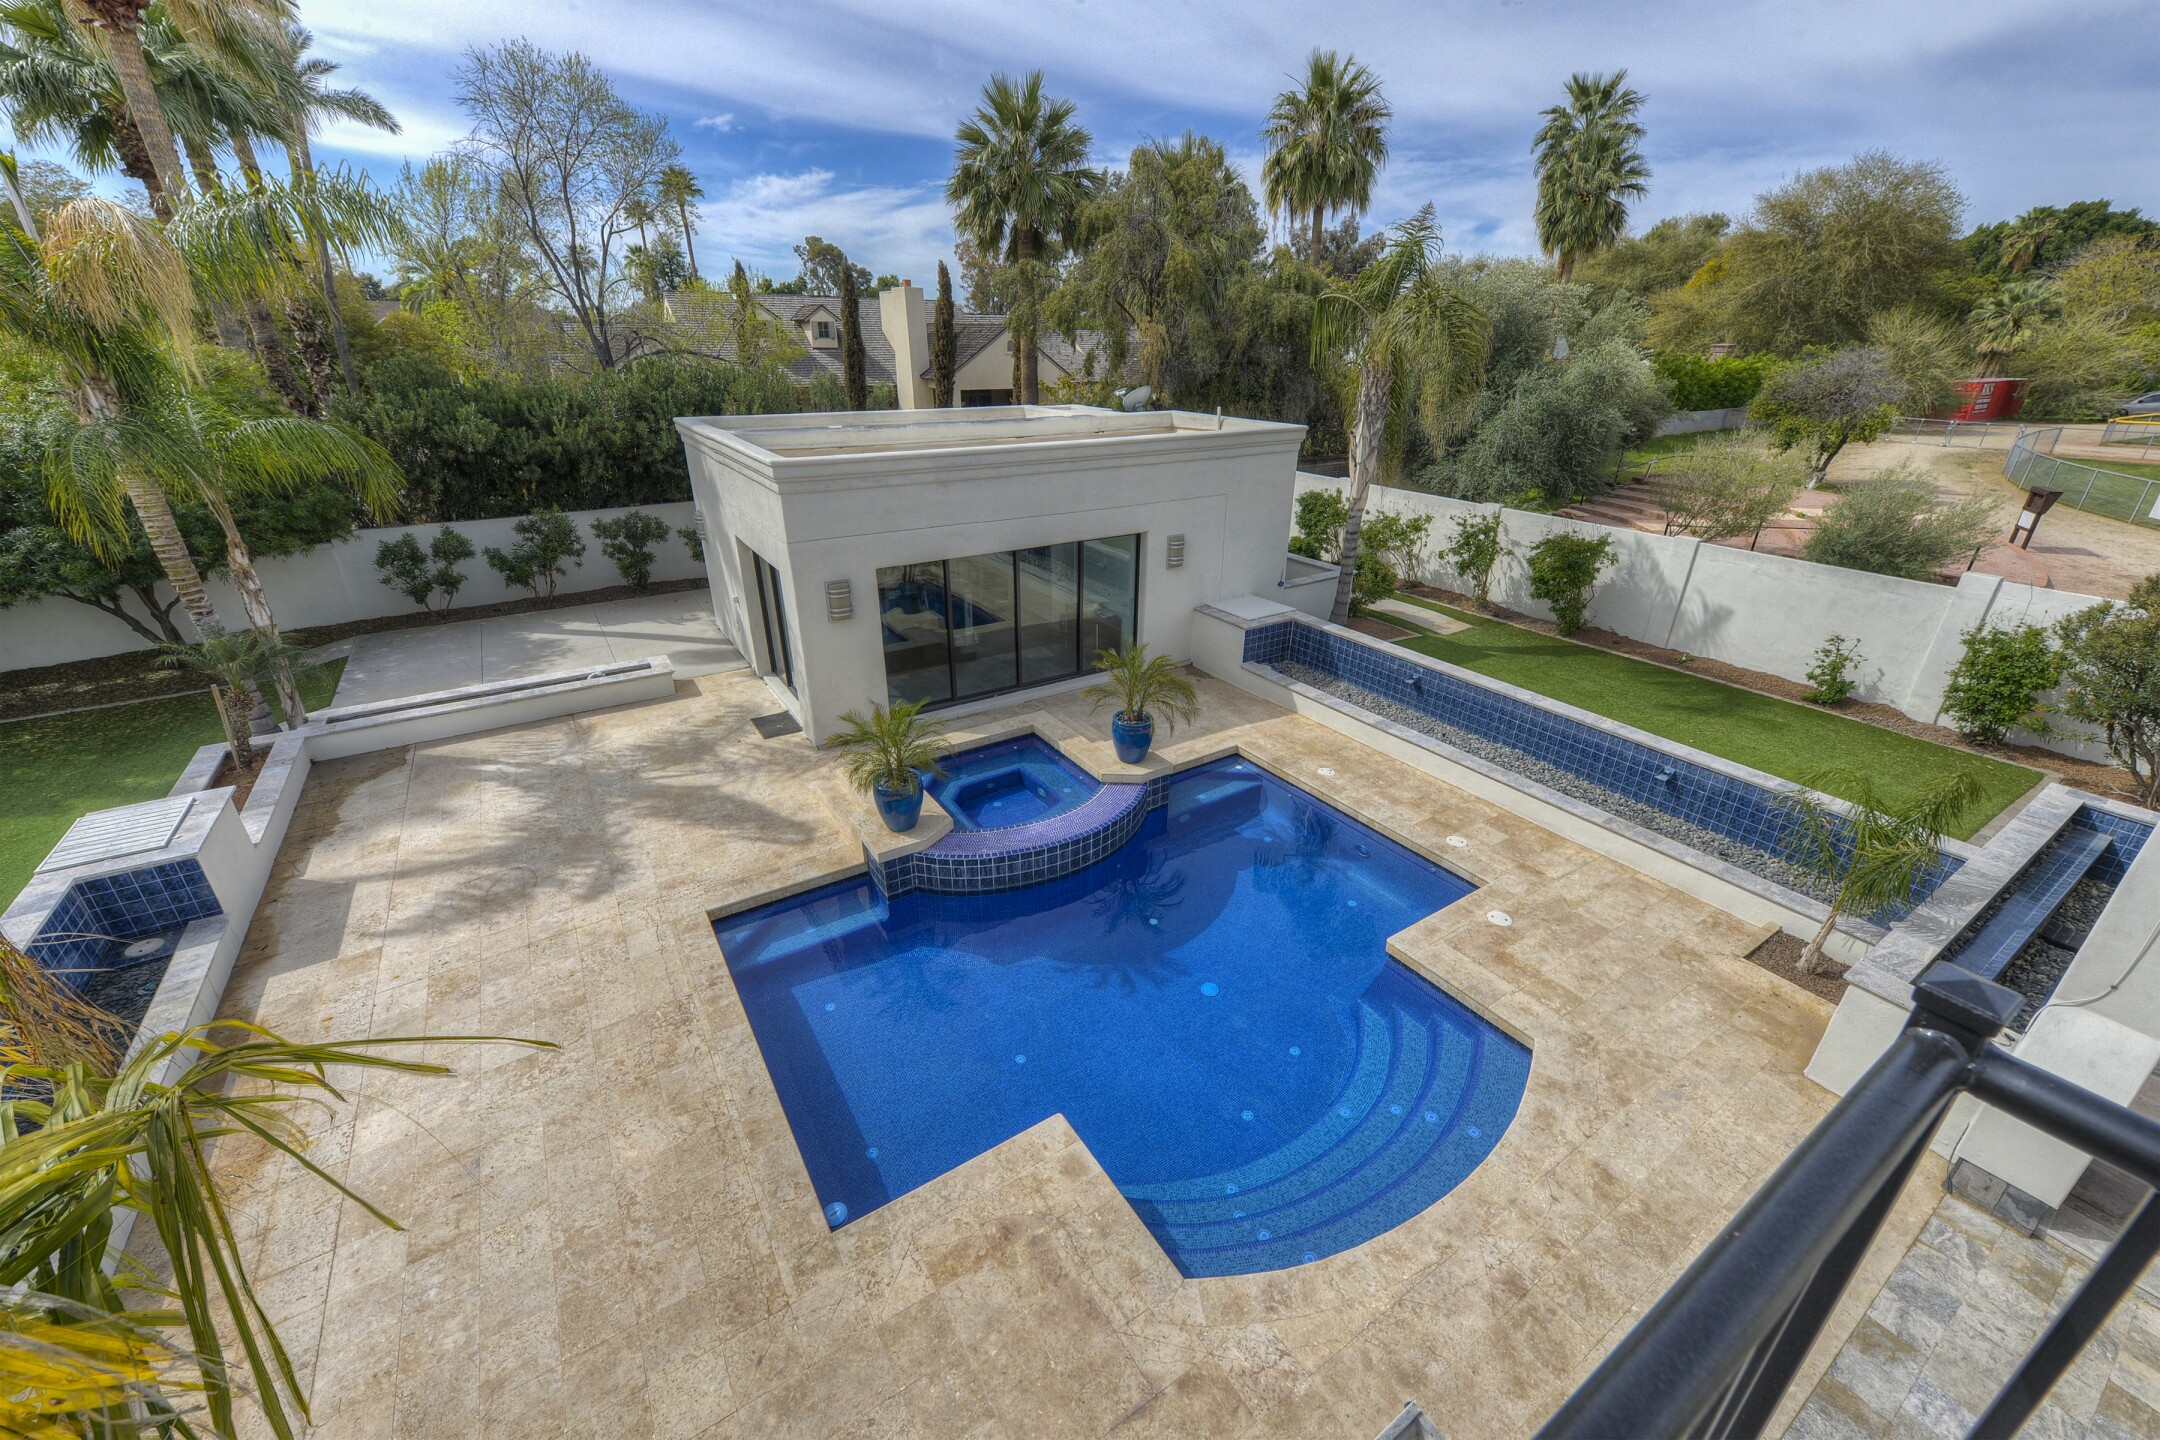 039_Pool Overview.jpg